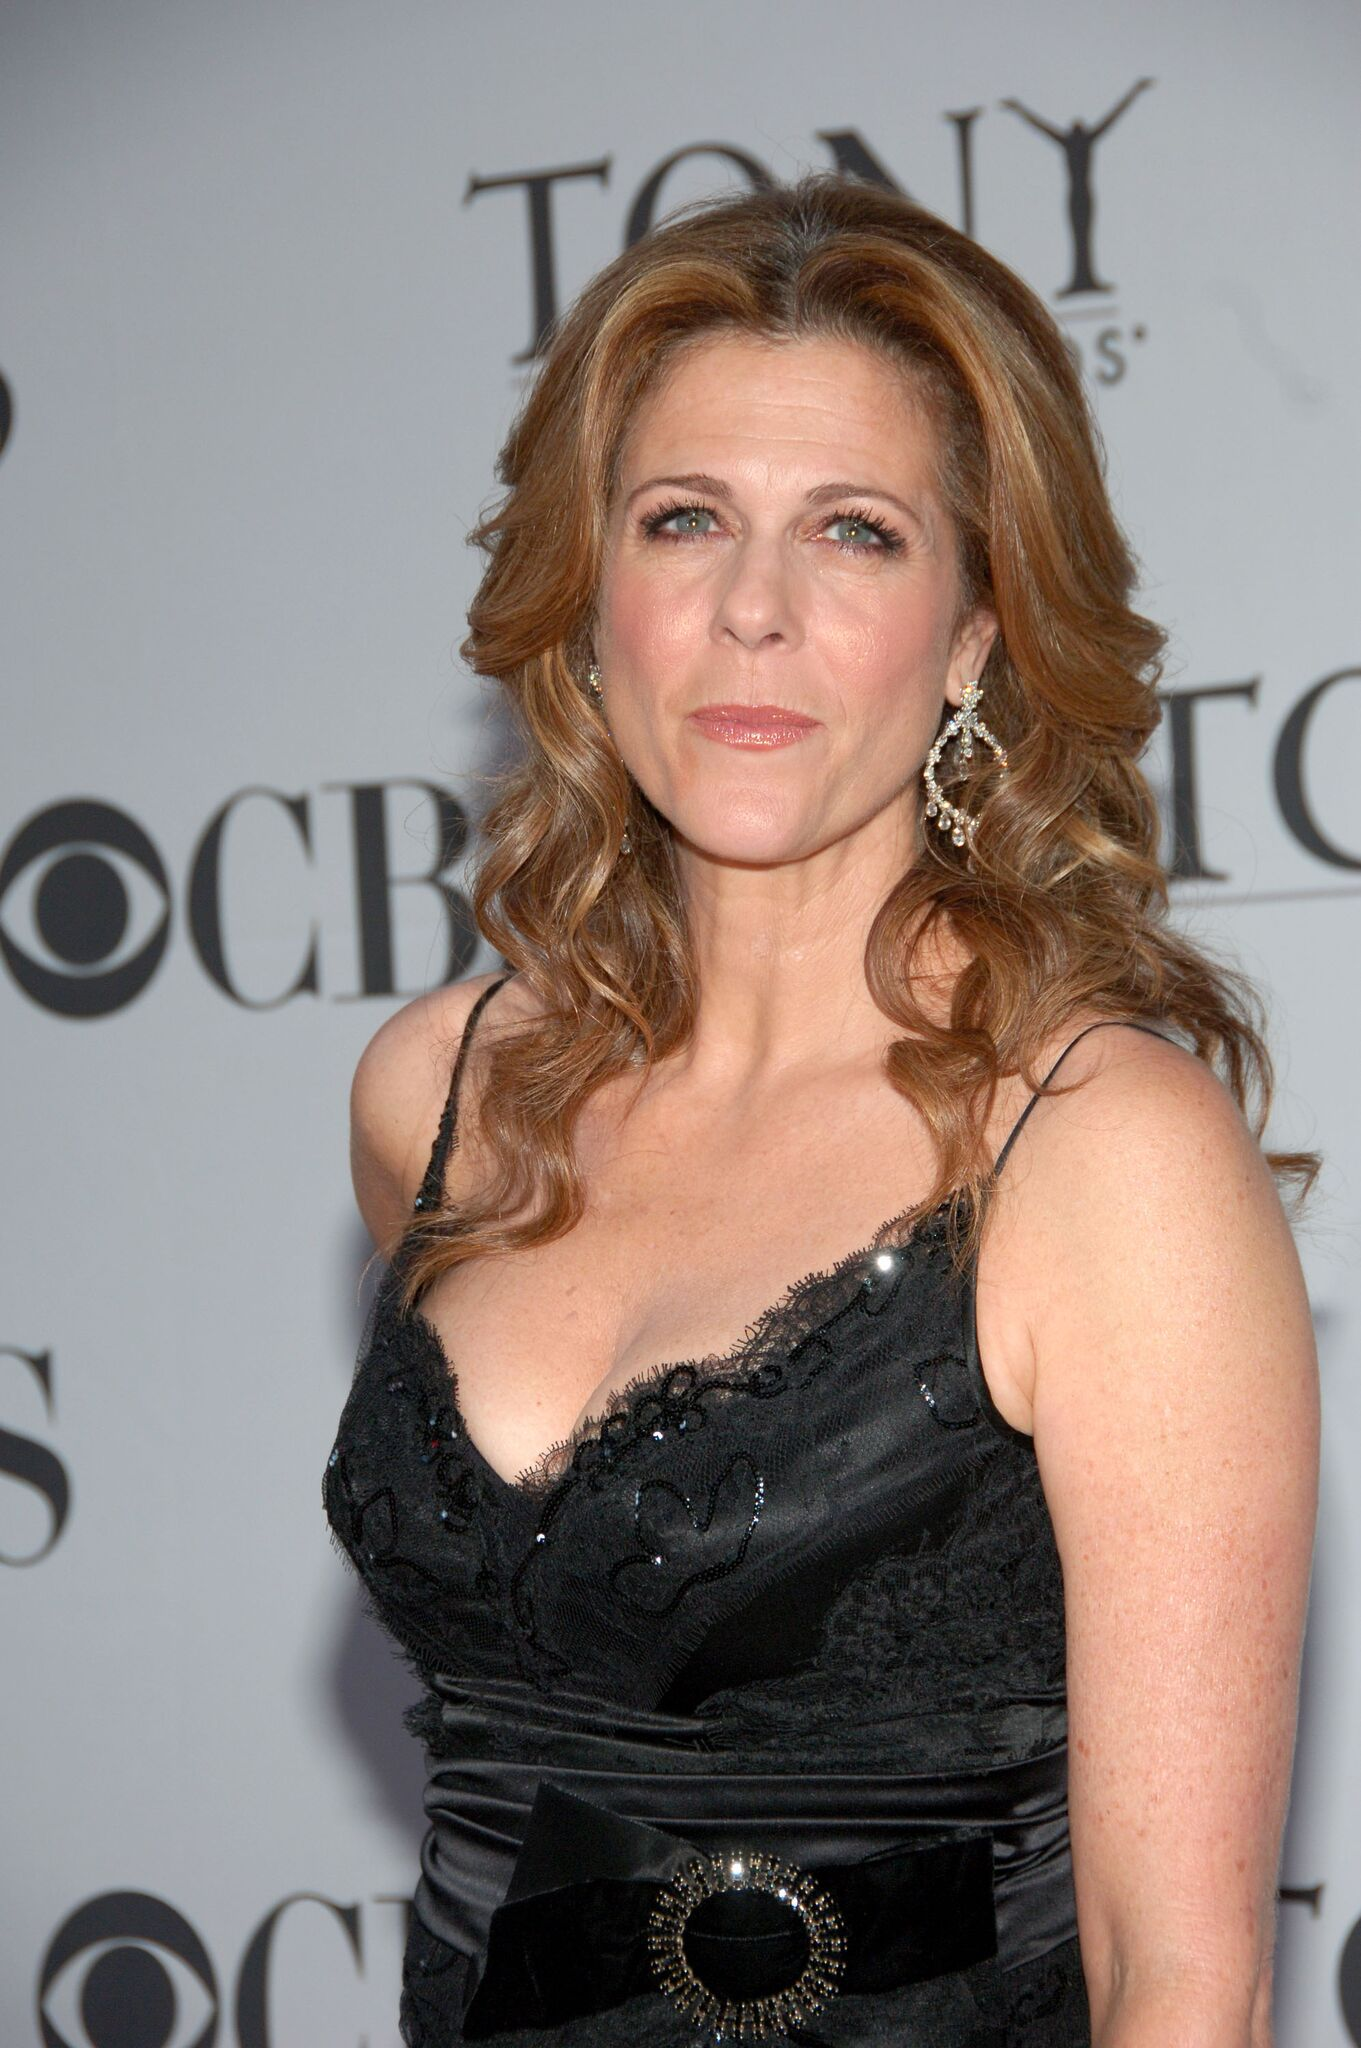 Rita Wilson during 60th Annual Tony Awards - Arrivals at Radio City Music Hall in New York City, New York, United States | Photo: Getty Images